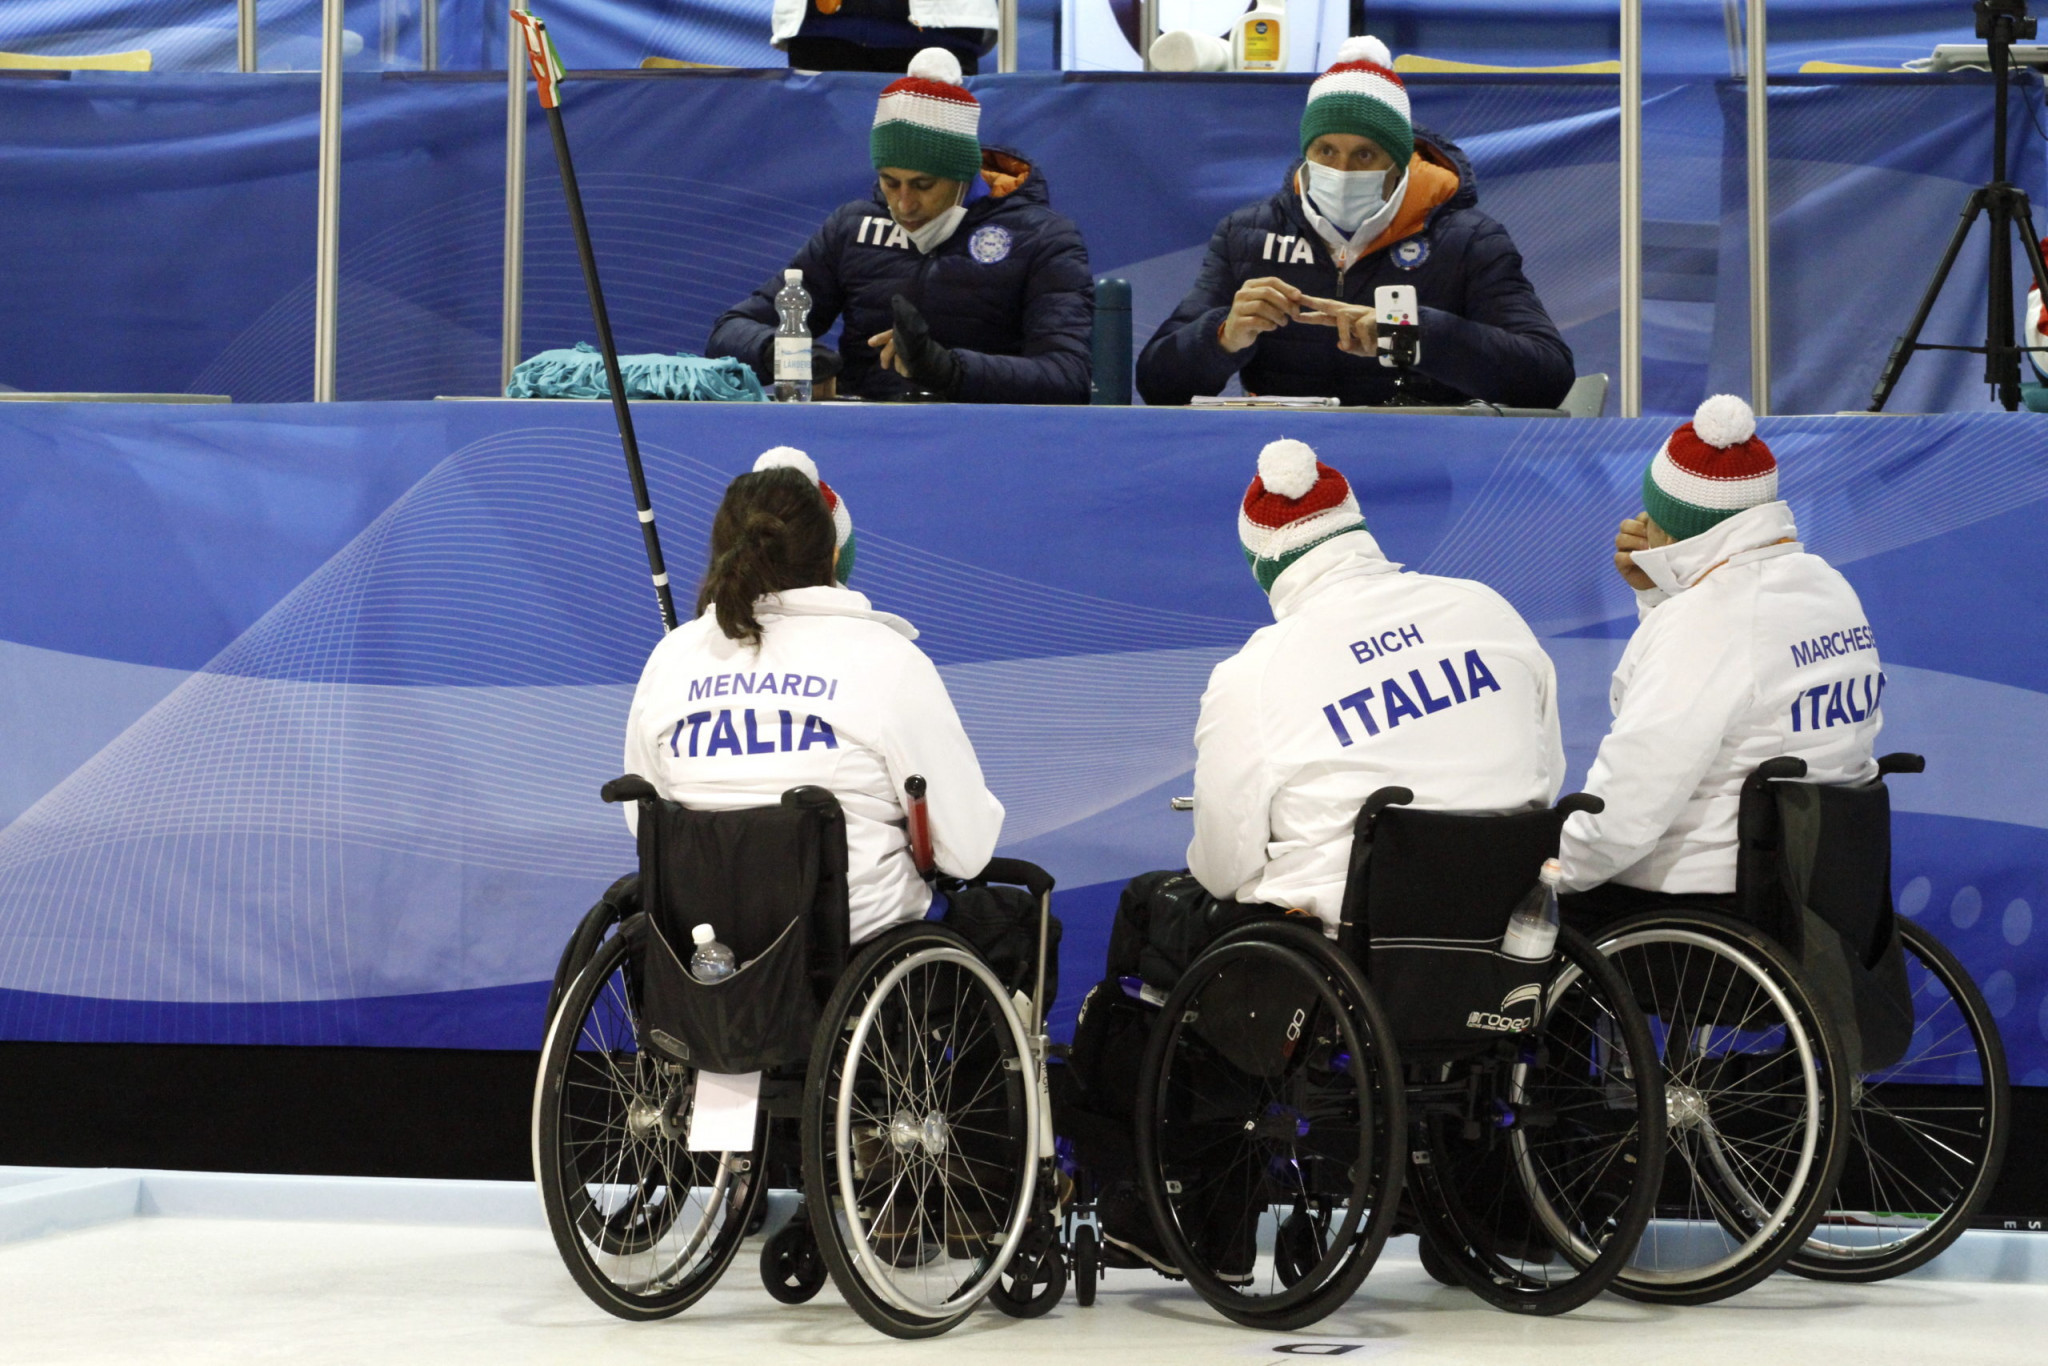 Italy's bronze medal ensured their spot at the 2021 World Wheelchair Curling Championship ©WCF/Jiri Snitil